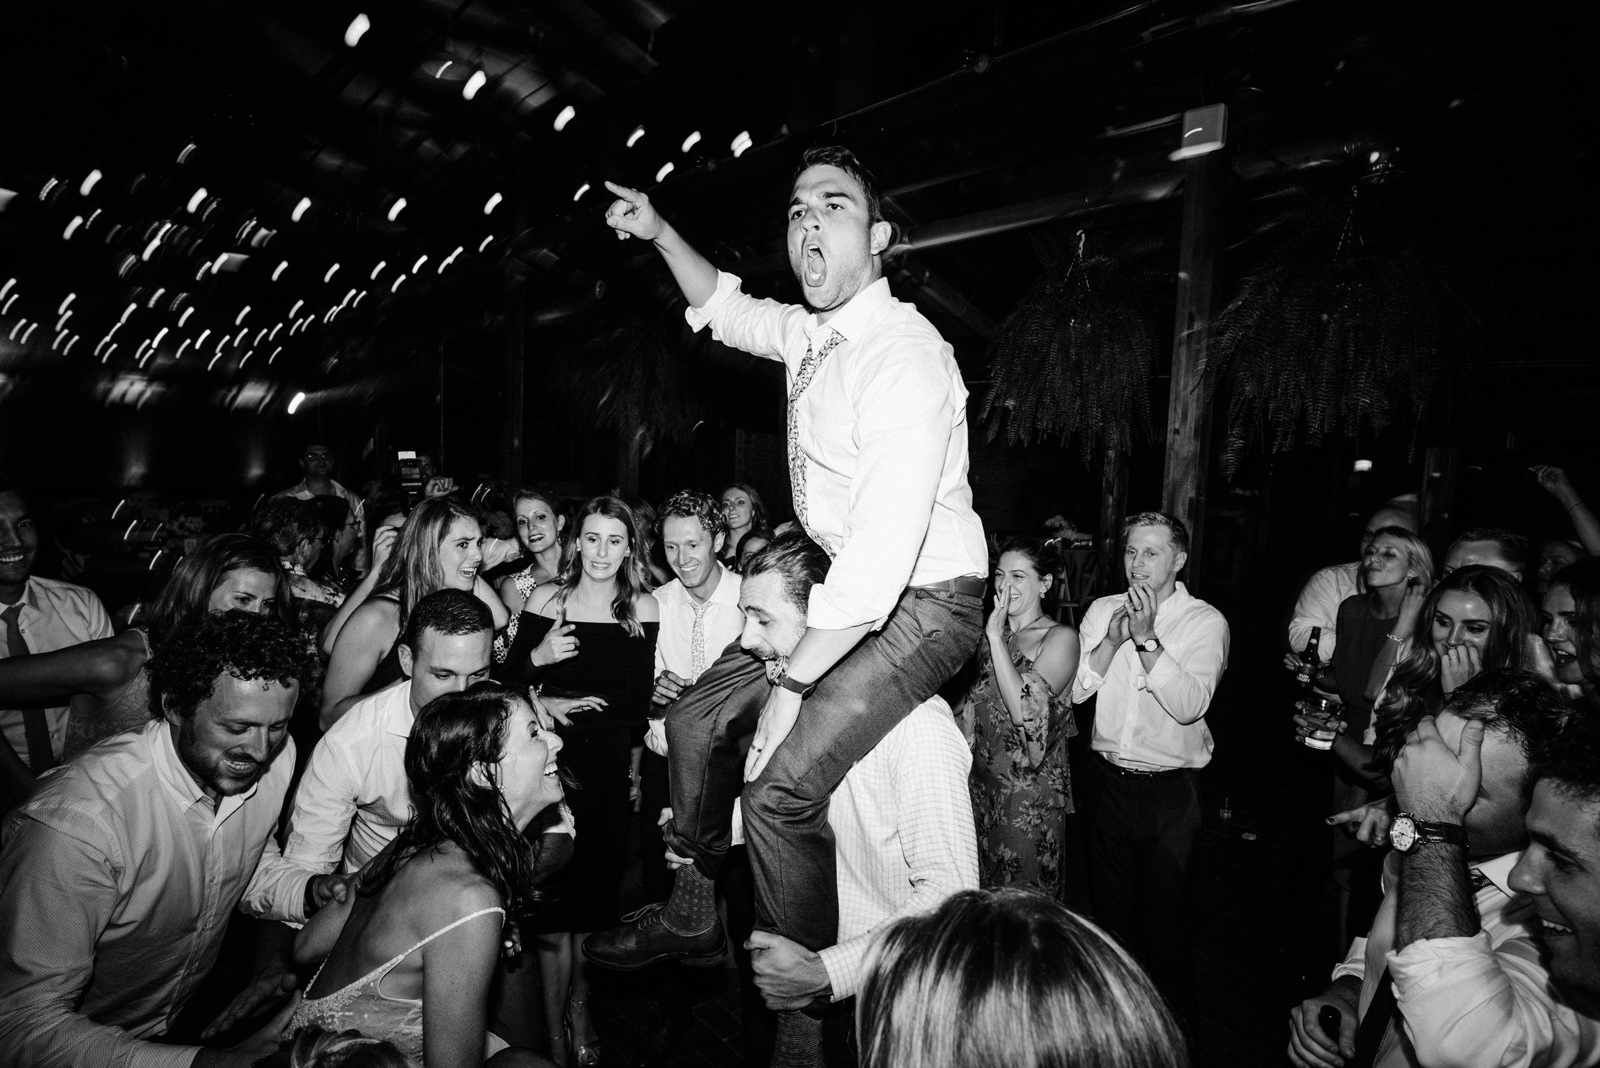 241-amazing-jewish-wedding-dance-party-at-kiana-lodge-by-film-photographer-ryan-flynn.jpg